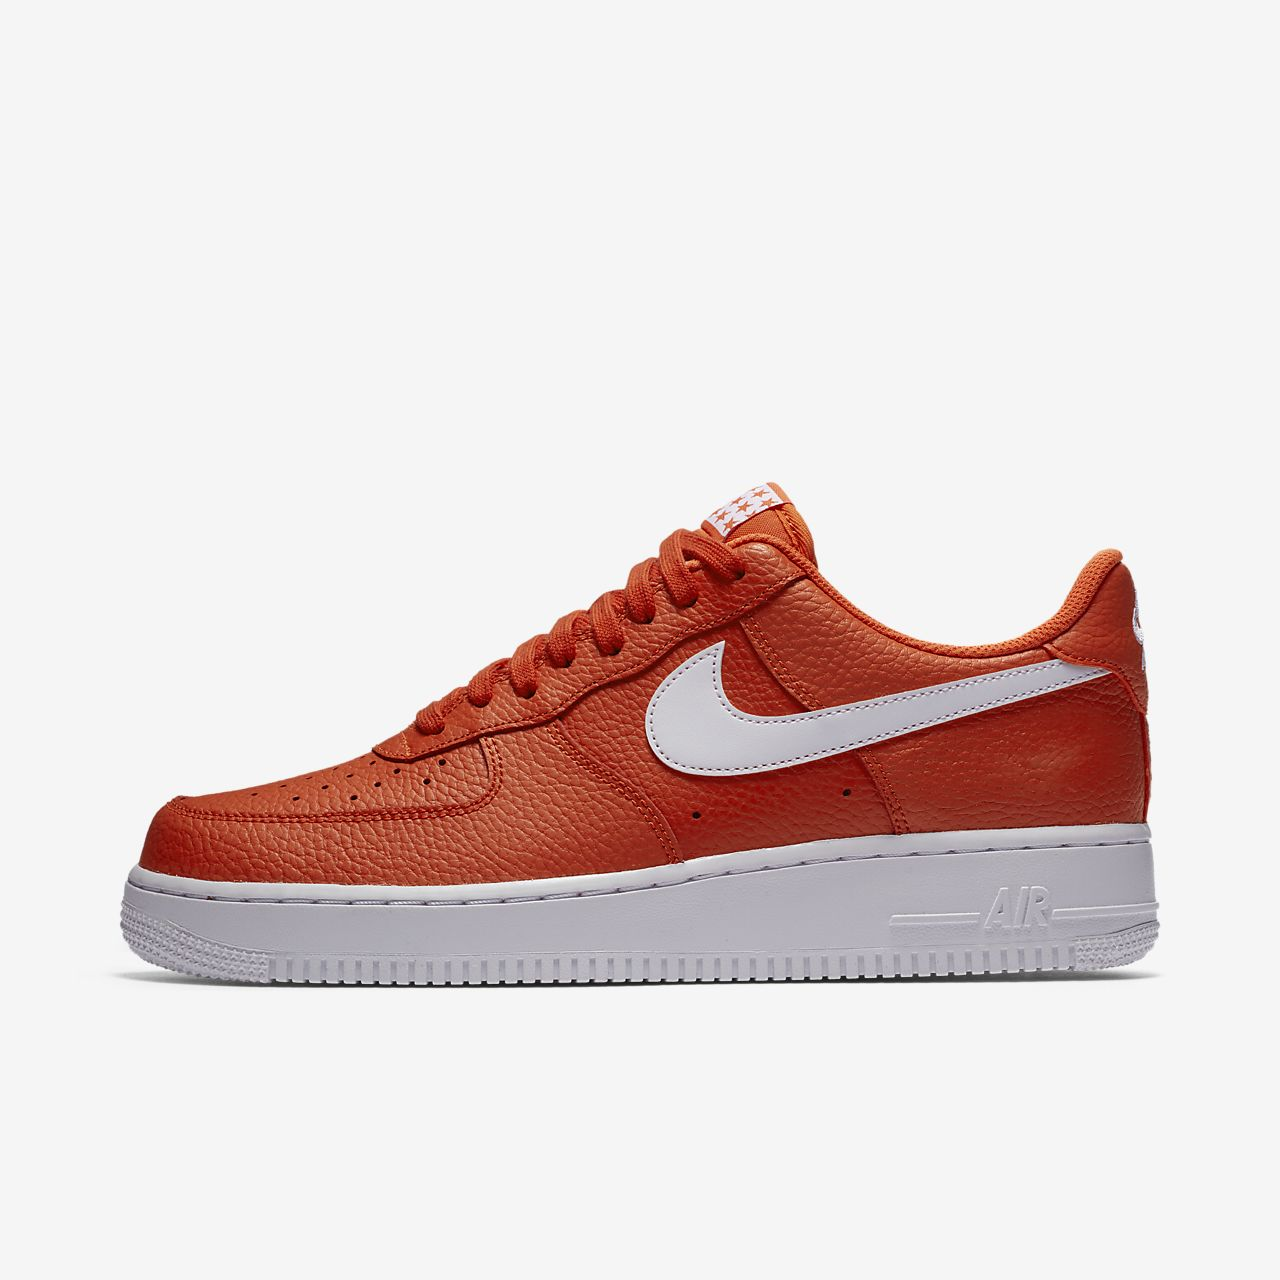 nike air force 1 07 lv8 men's shoe red nz